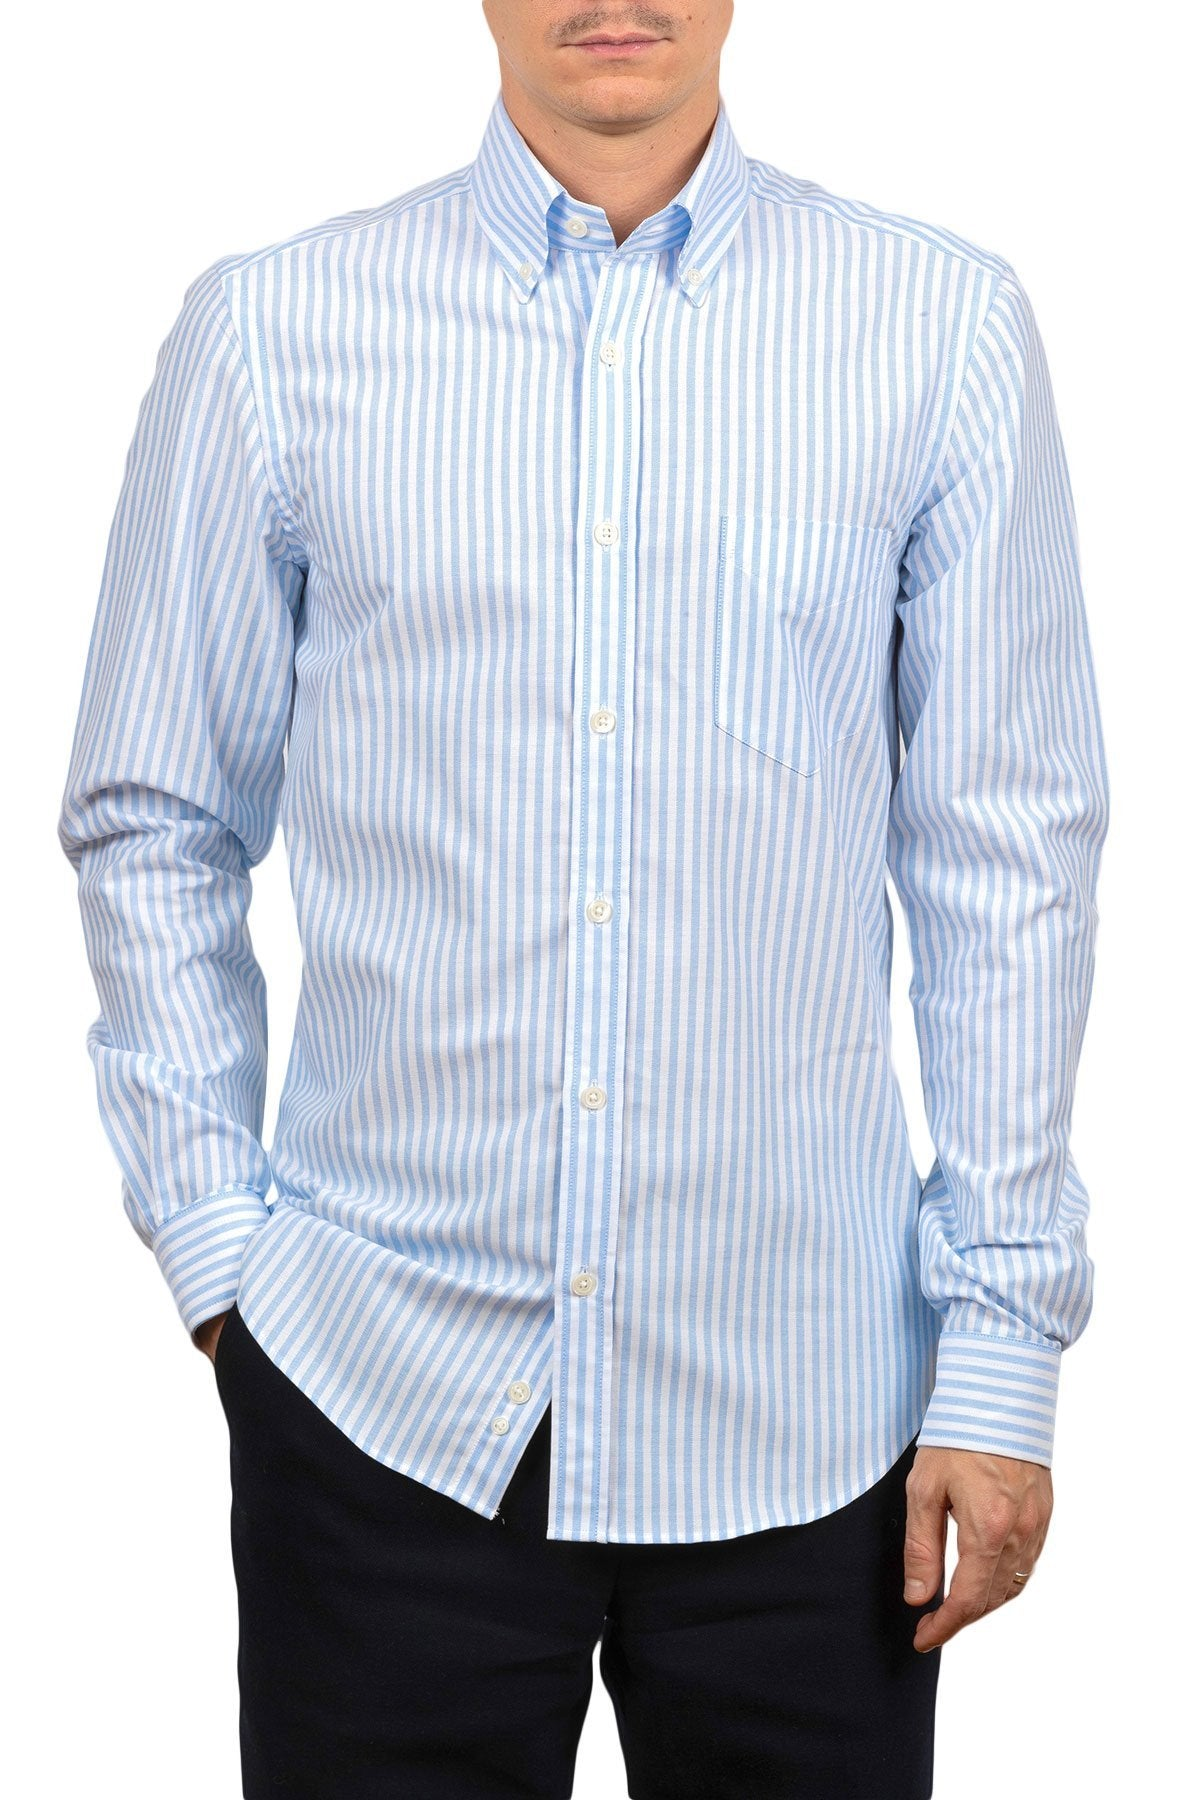 An ivy Skjorte The Striped Oxford Shirt